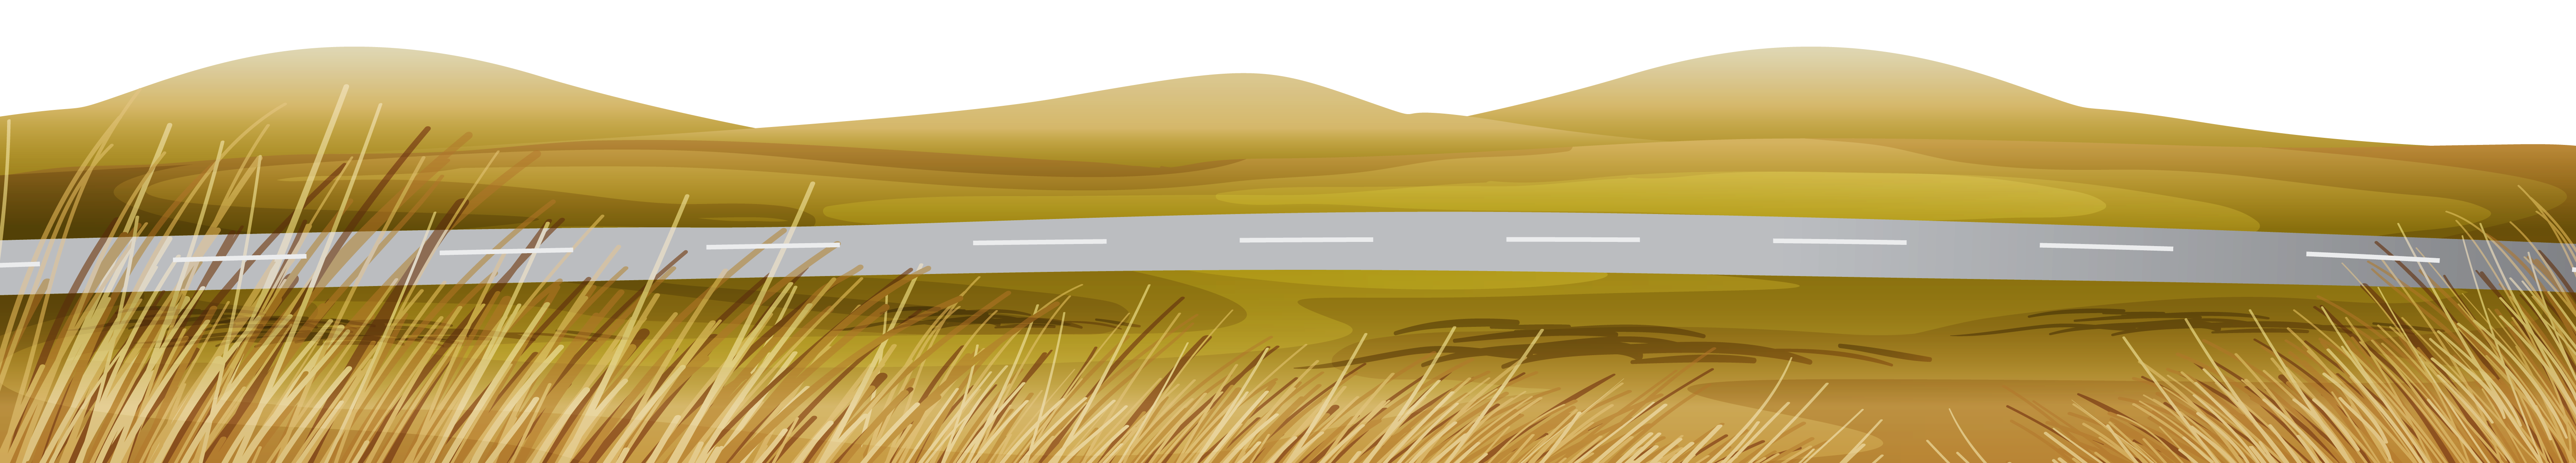 Fall asphalted with ground. Clipart grass road